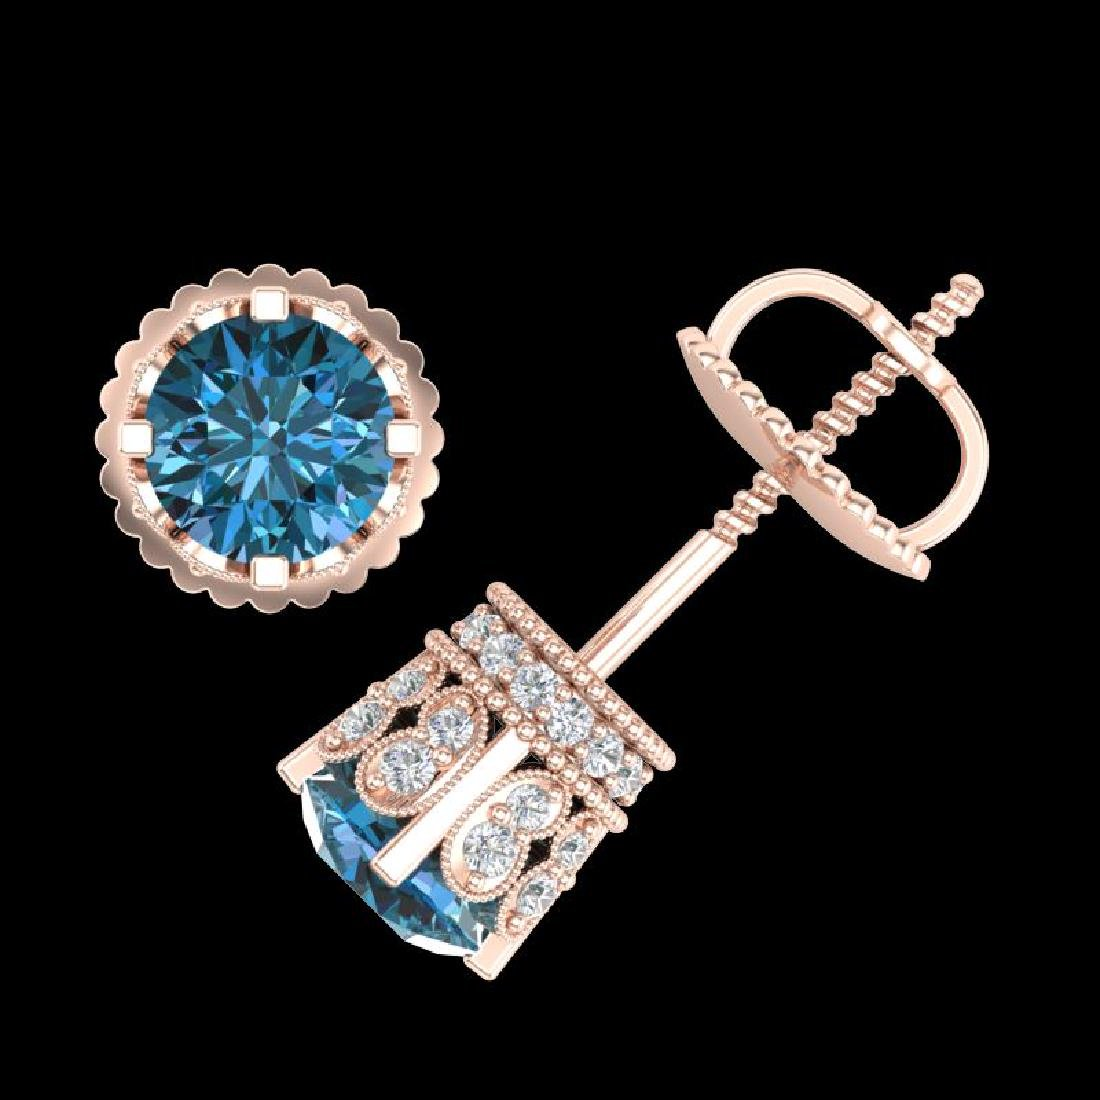 1.75 CTW Fancy Intense Blue Diamond Art Deco Stud - 3